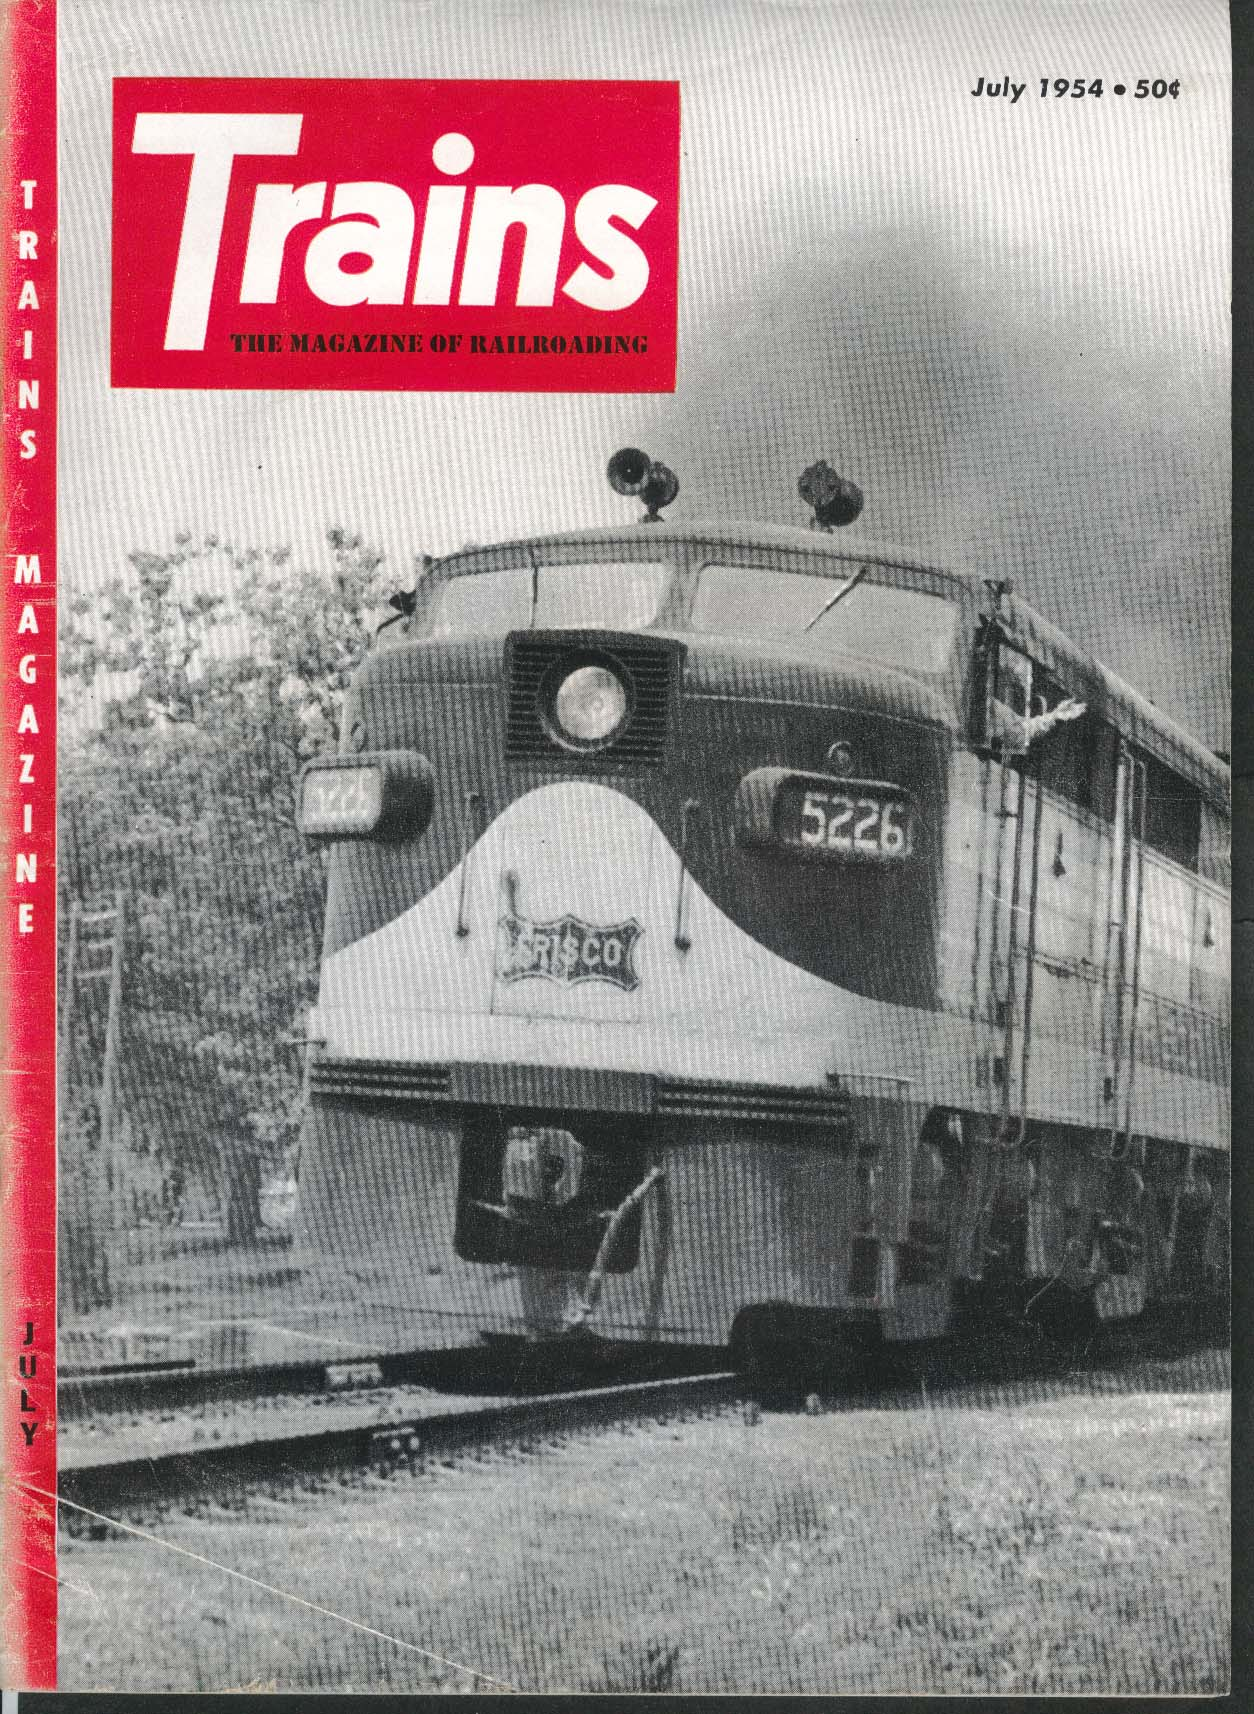 TRAINS Steam Monon British Empire Locomotives American Locomotive Company 7 1954